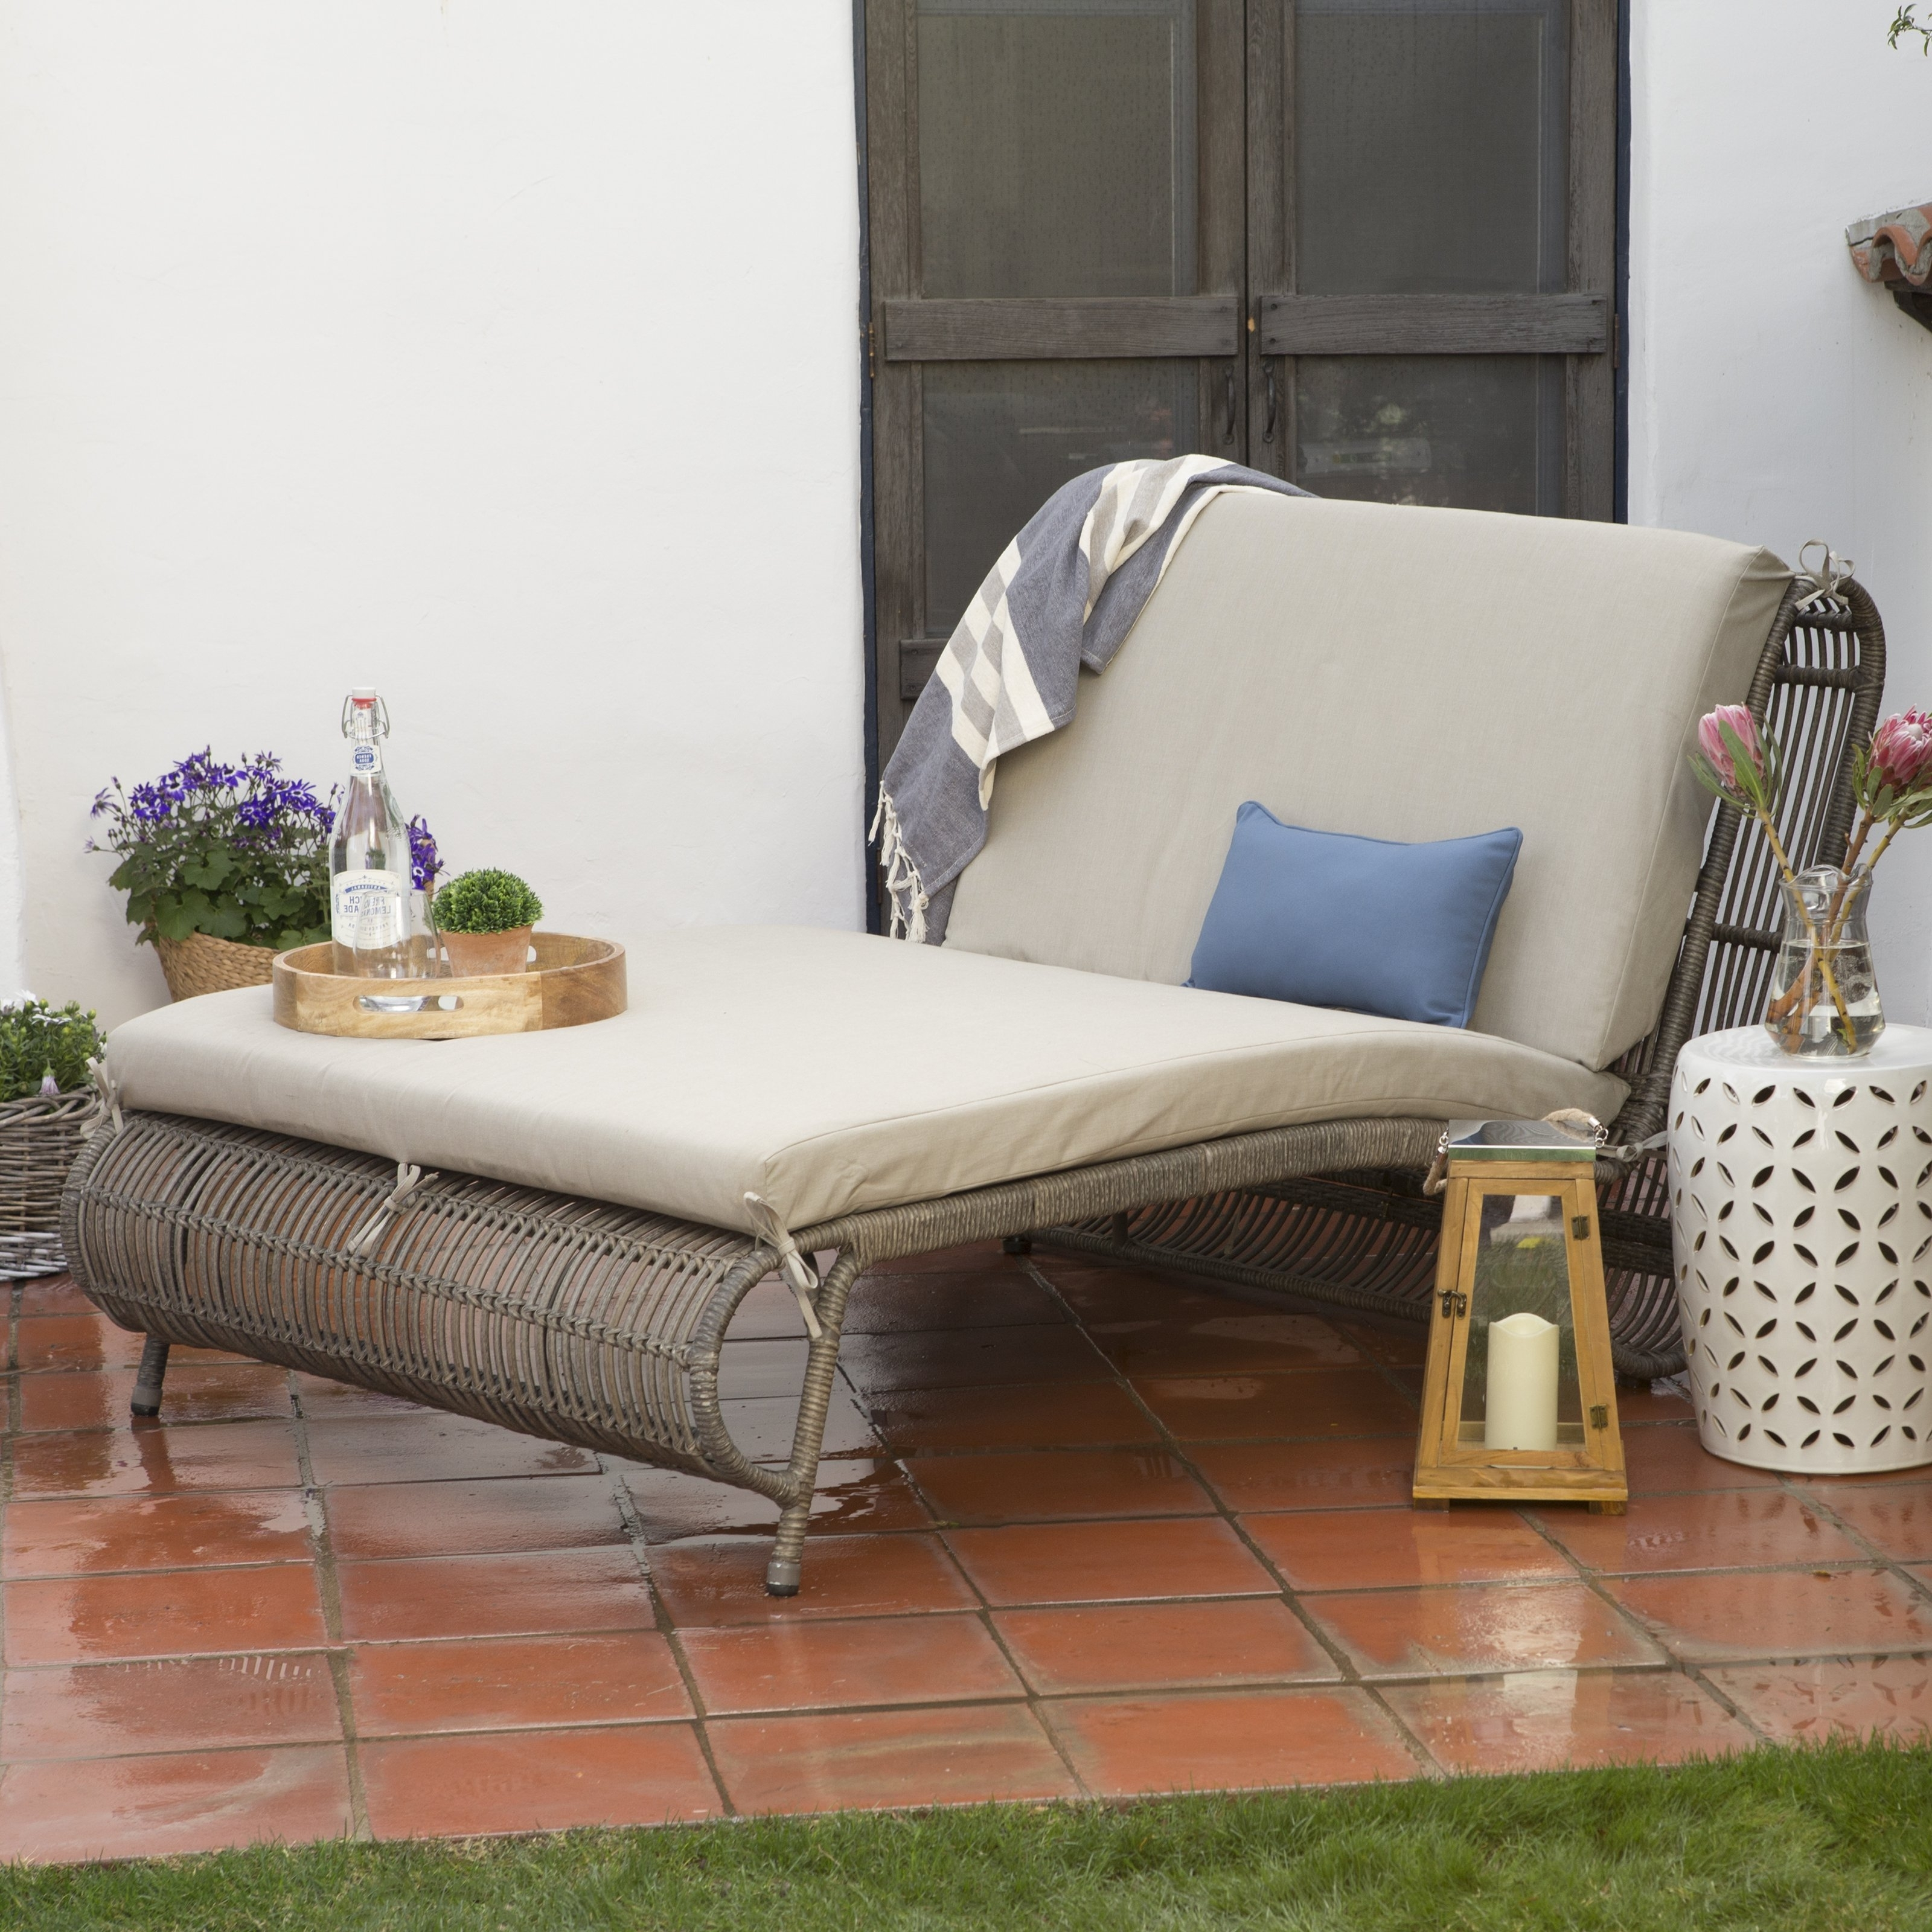 Outdoor Chaise Lounges For Favorite Coral Coast Del Rey Double Chaise Lounge With Canopy (View 5 of 15)